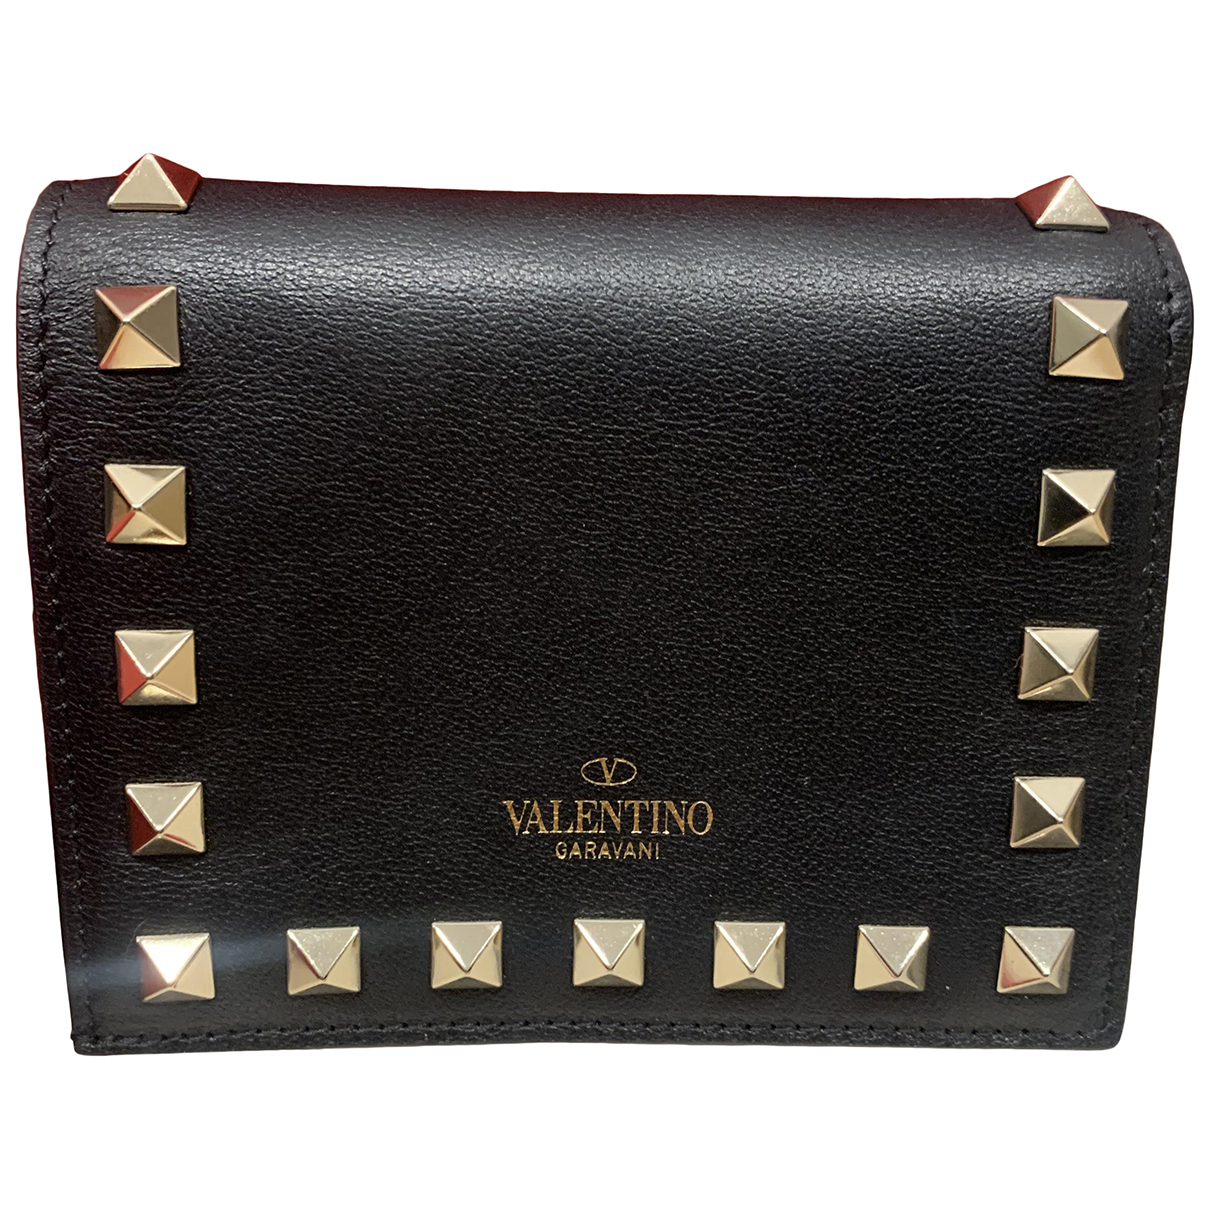 Valentino Garavani N Black Leather wallet for Women N